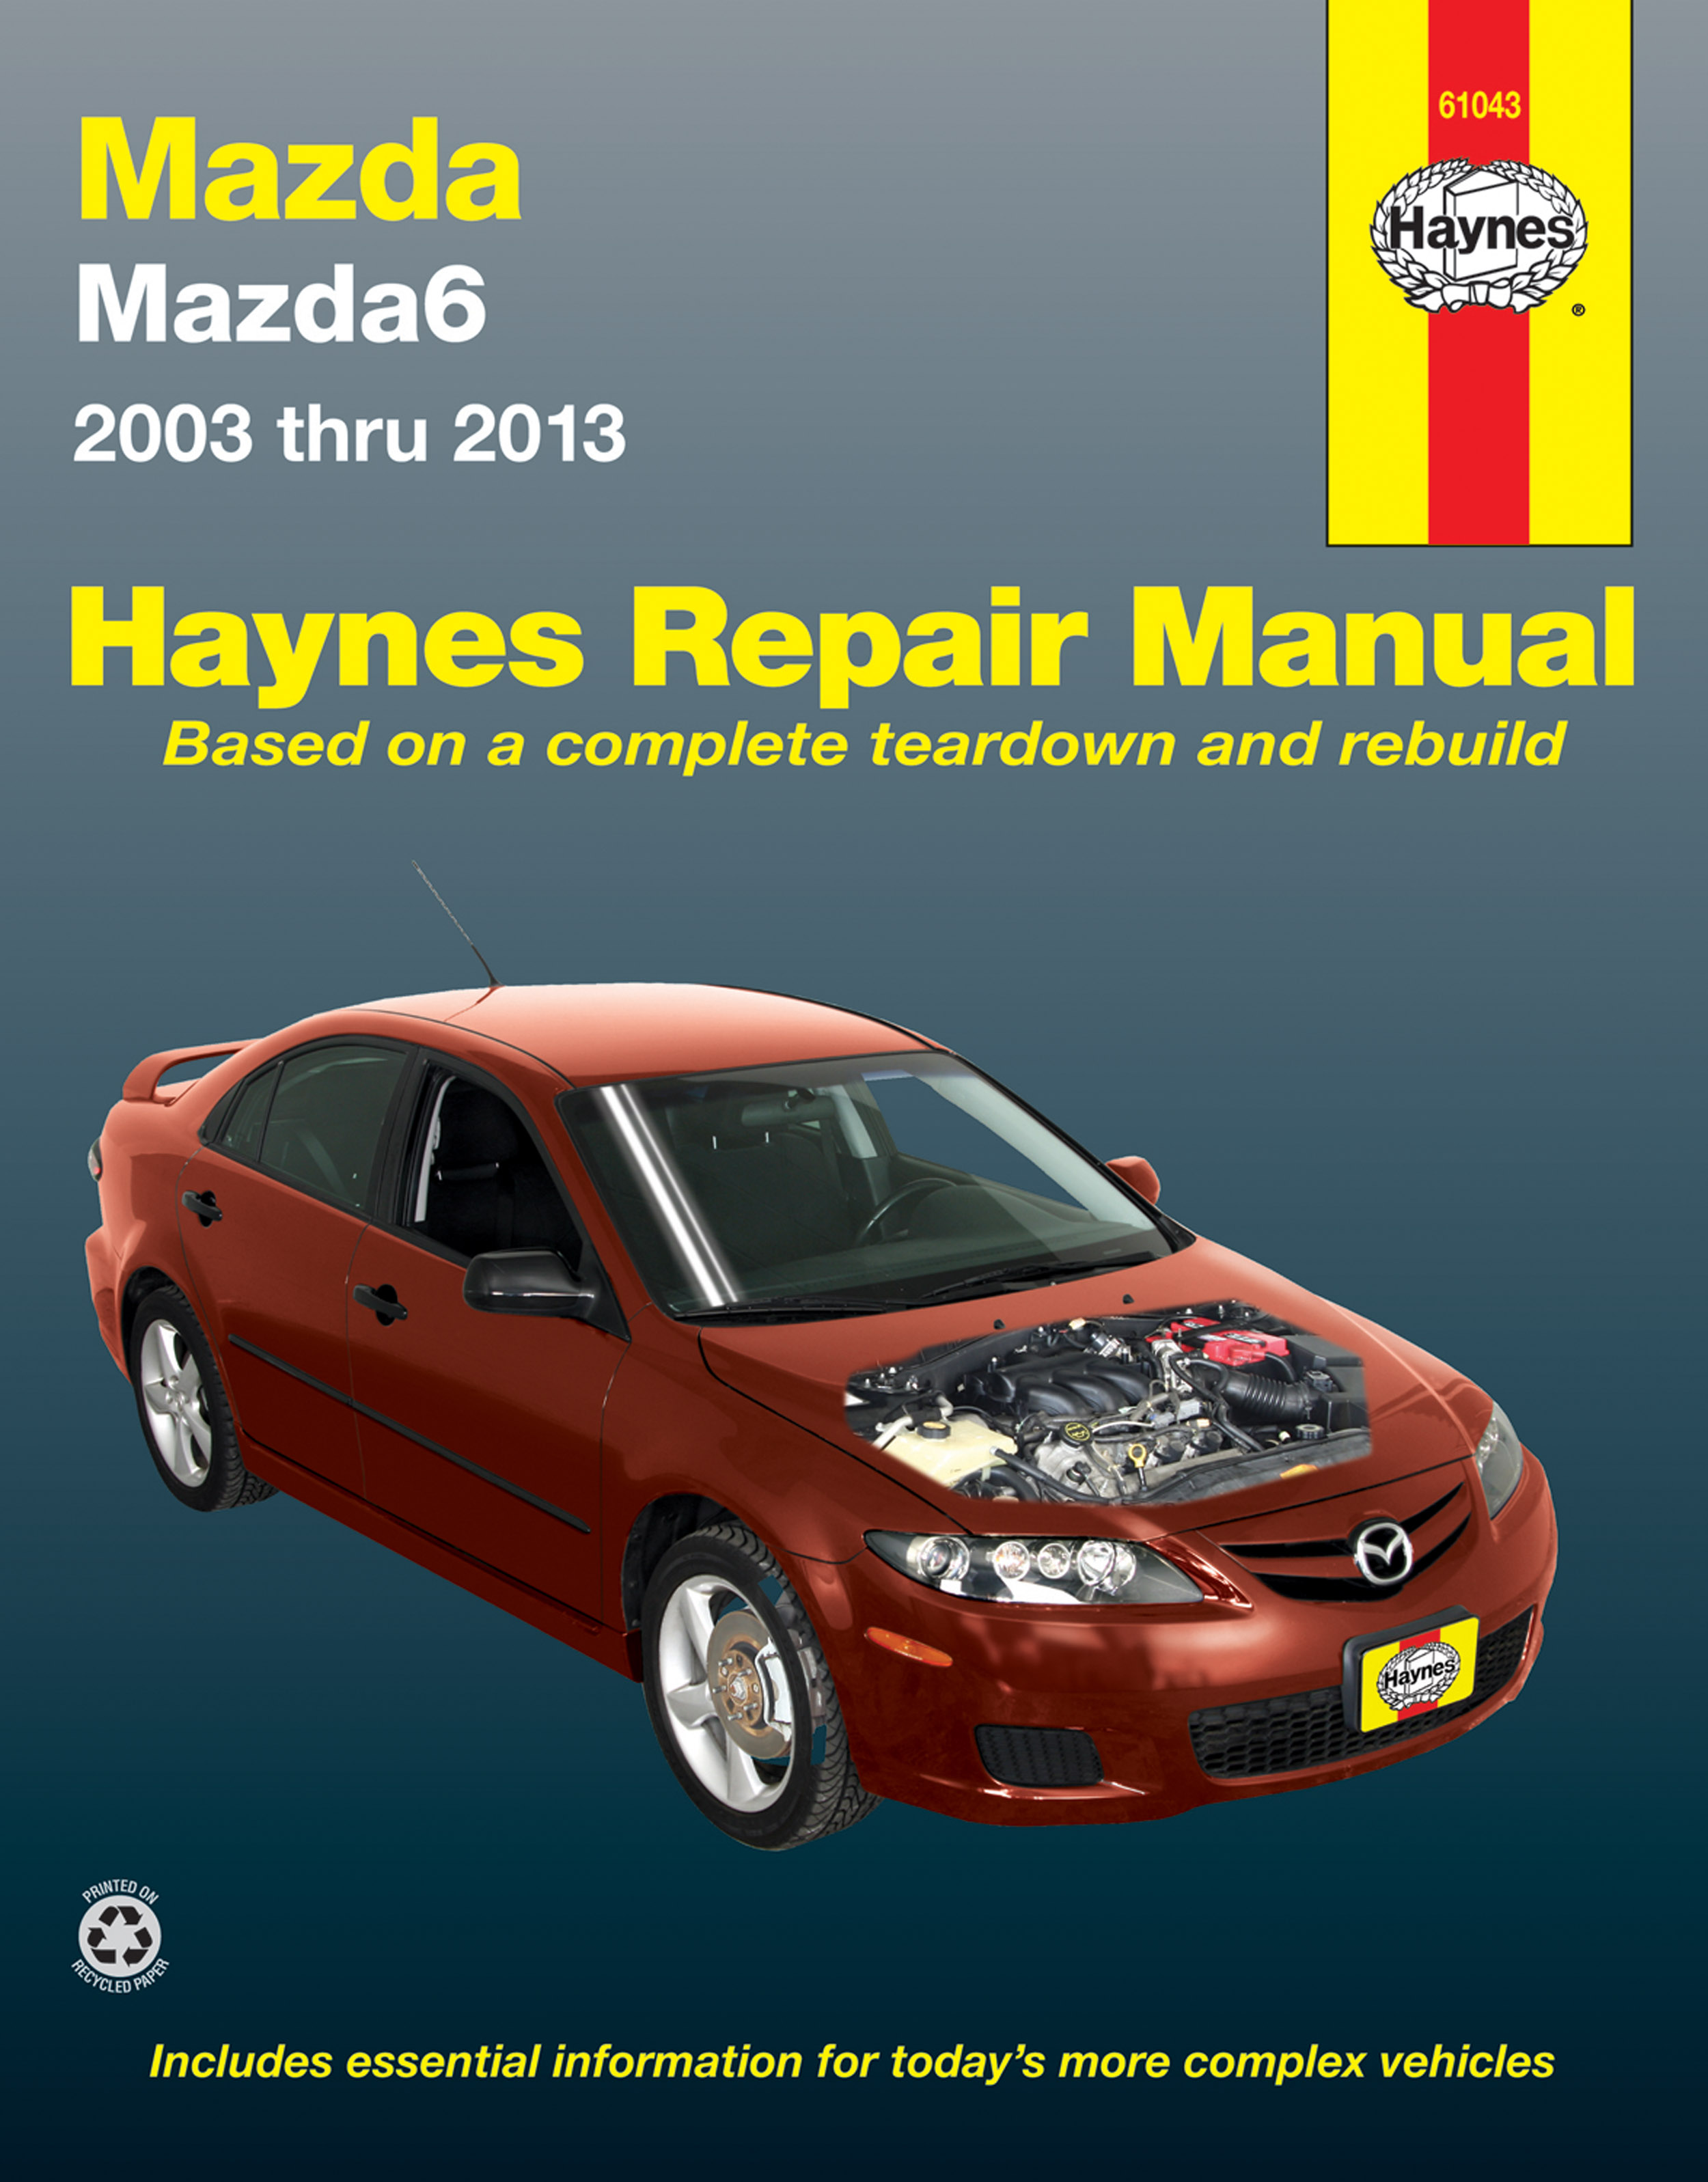 ... Mazda6 (03-13) Haynes Repair Manual. Enlarge ...